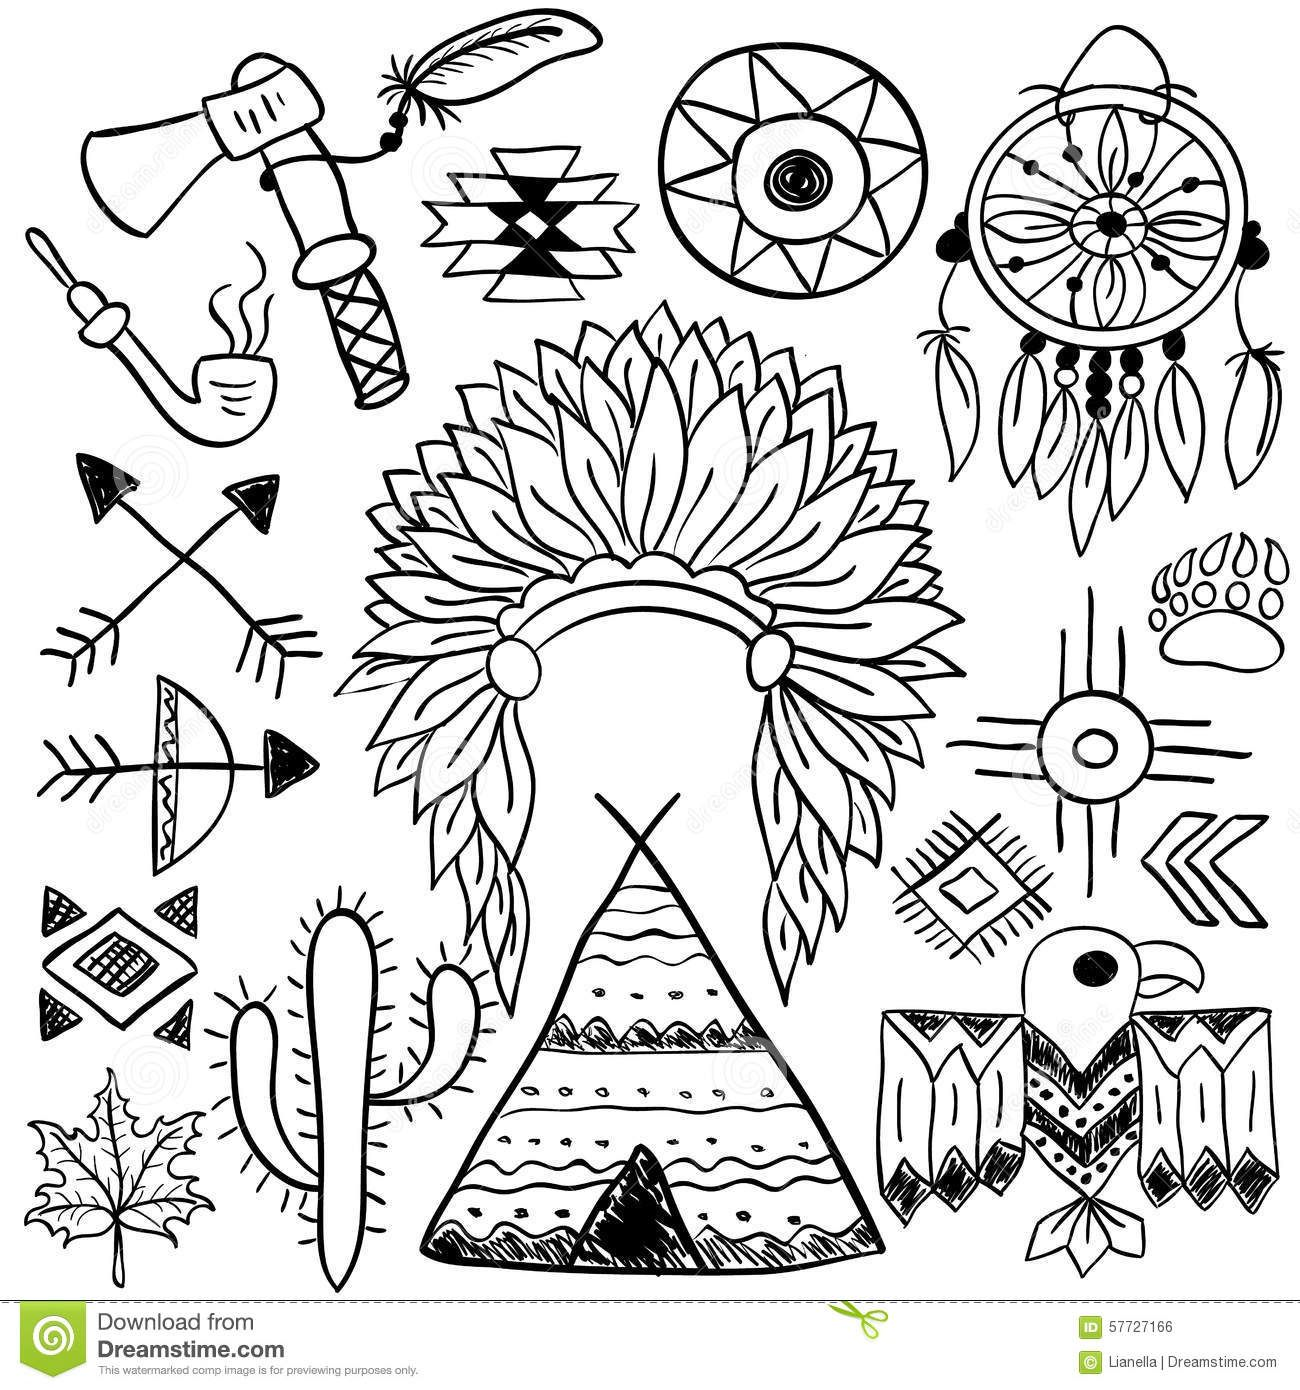 Hand drawn doodle vector native american symbols set native hand drawn doodle vector native american symbols set biocorpaavc Images